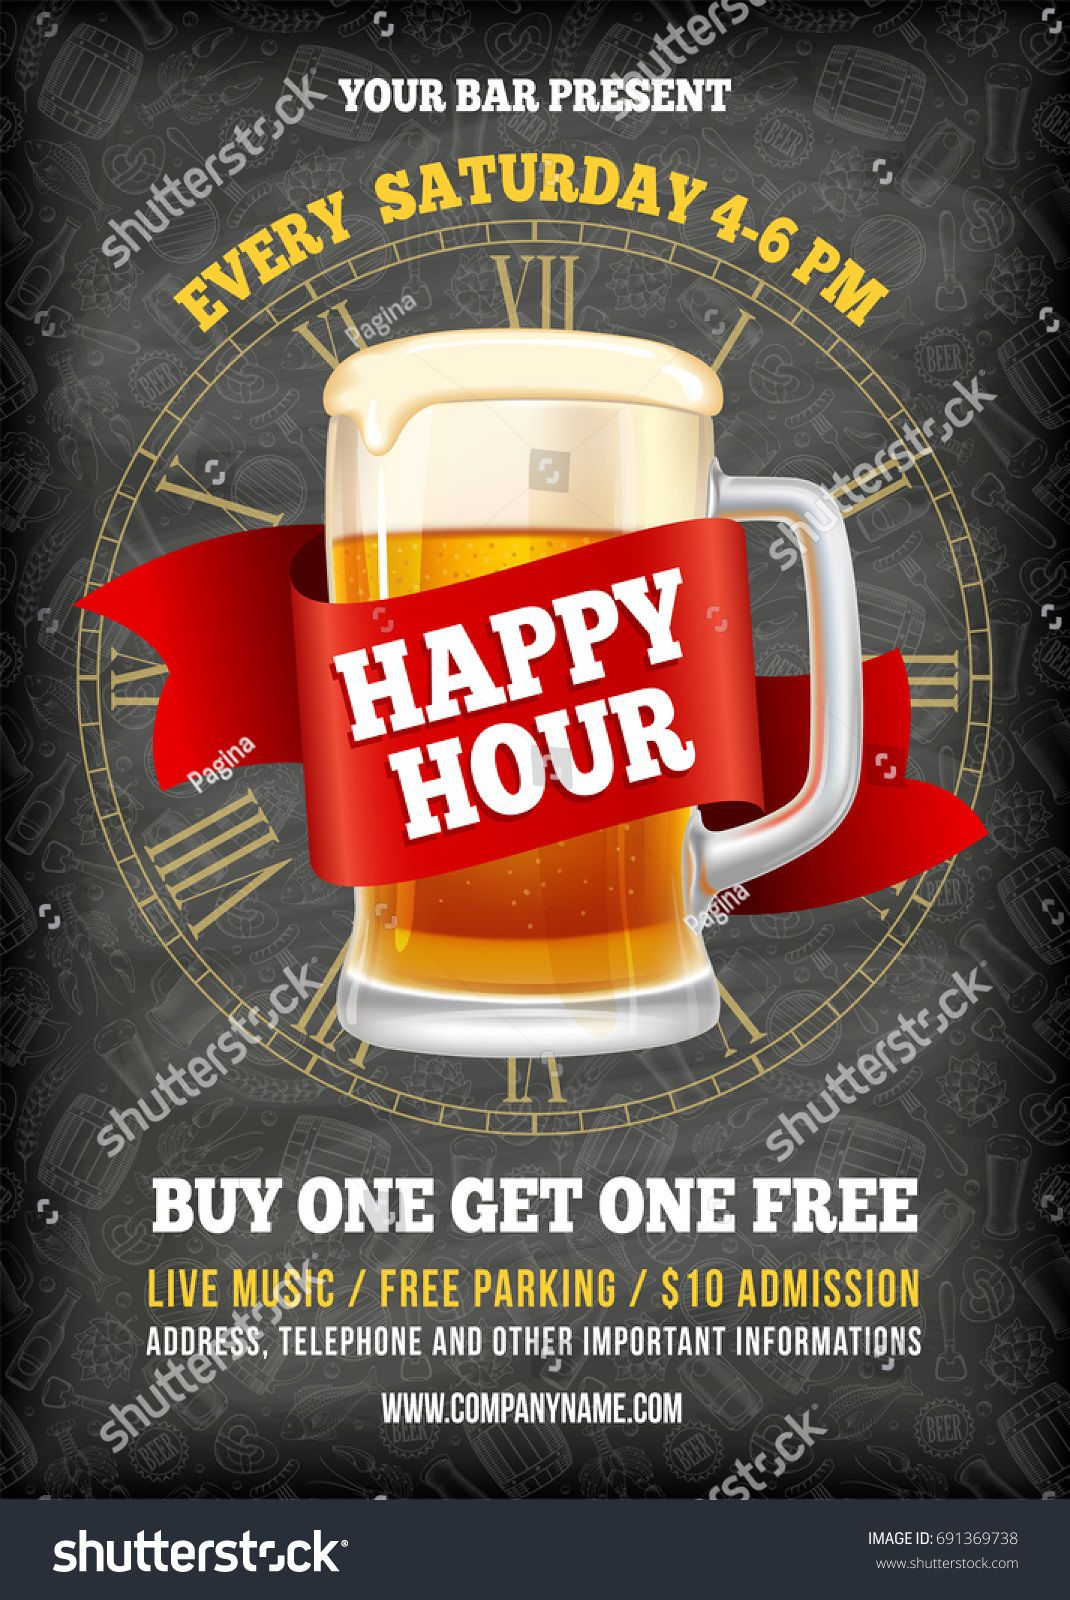 008 Surprising Happy Hour Invitation Template Image  Templates Free Word FarewellFull